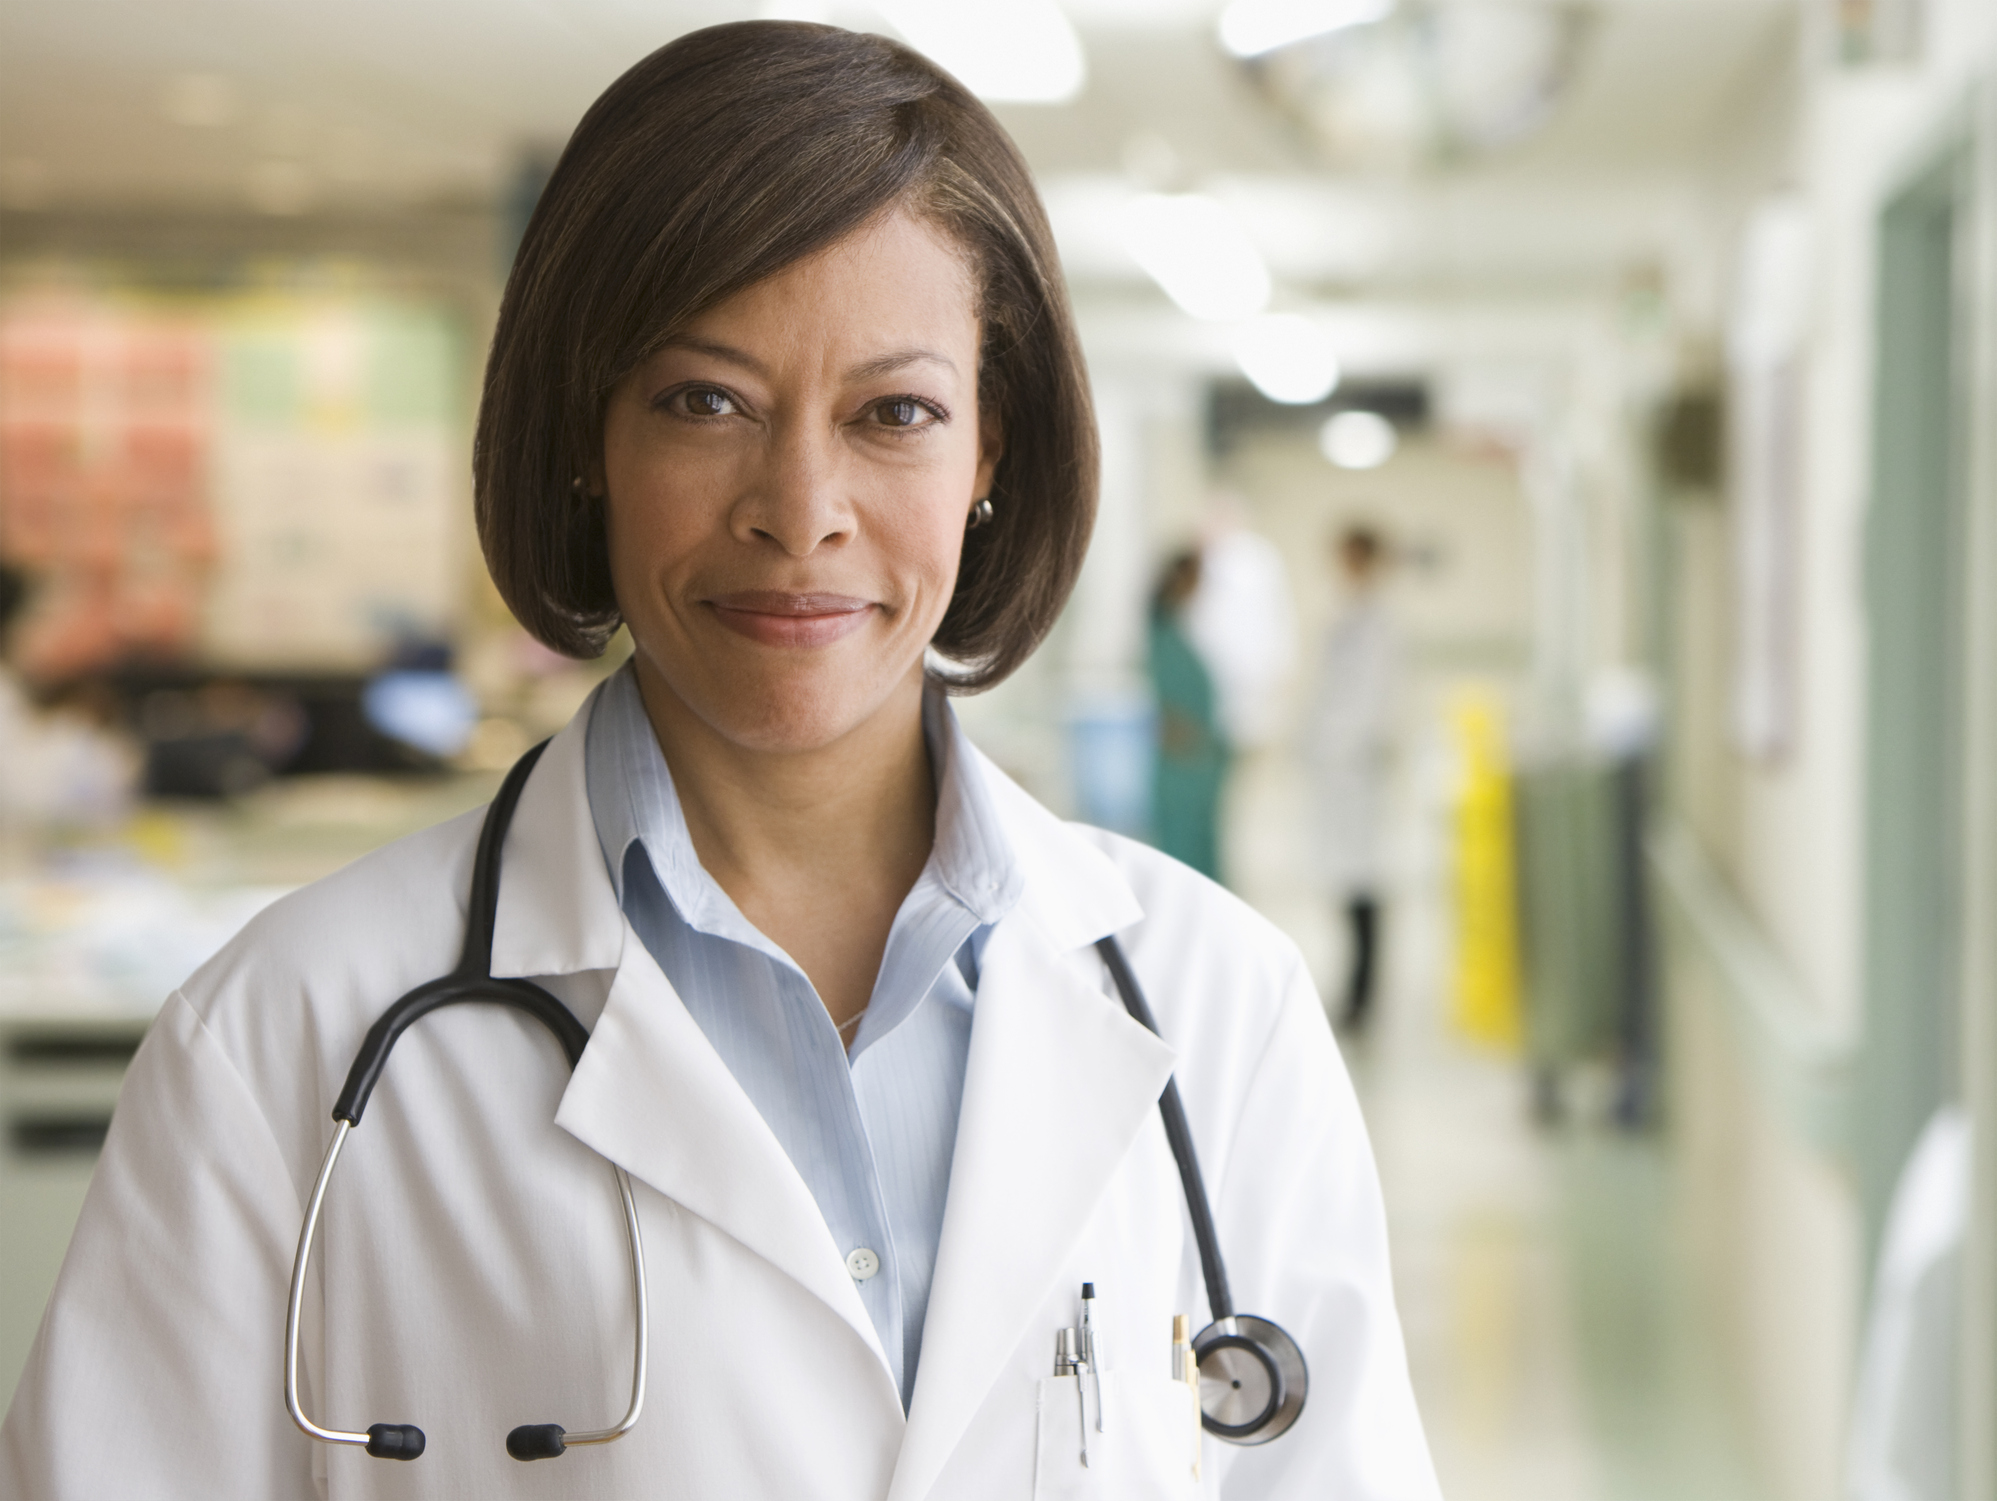 10 Medical Schools With The Most African American Students